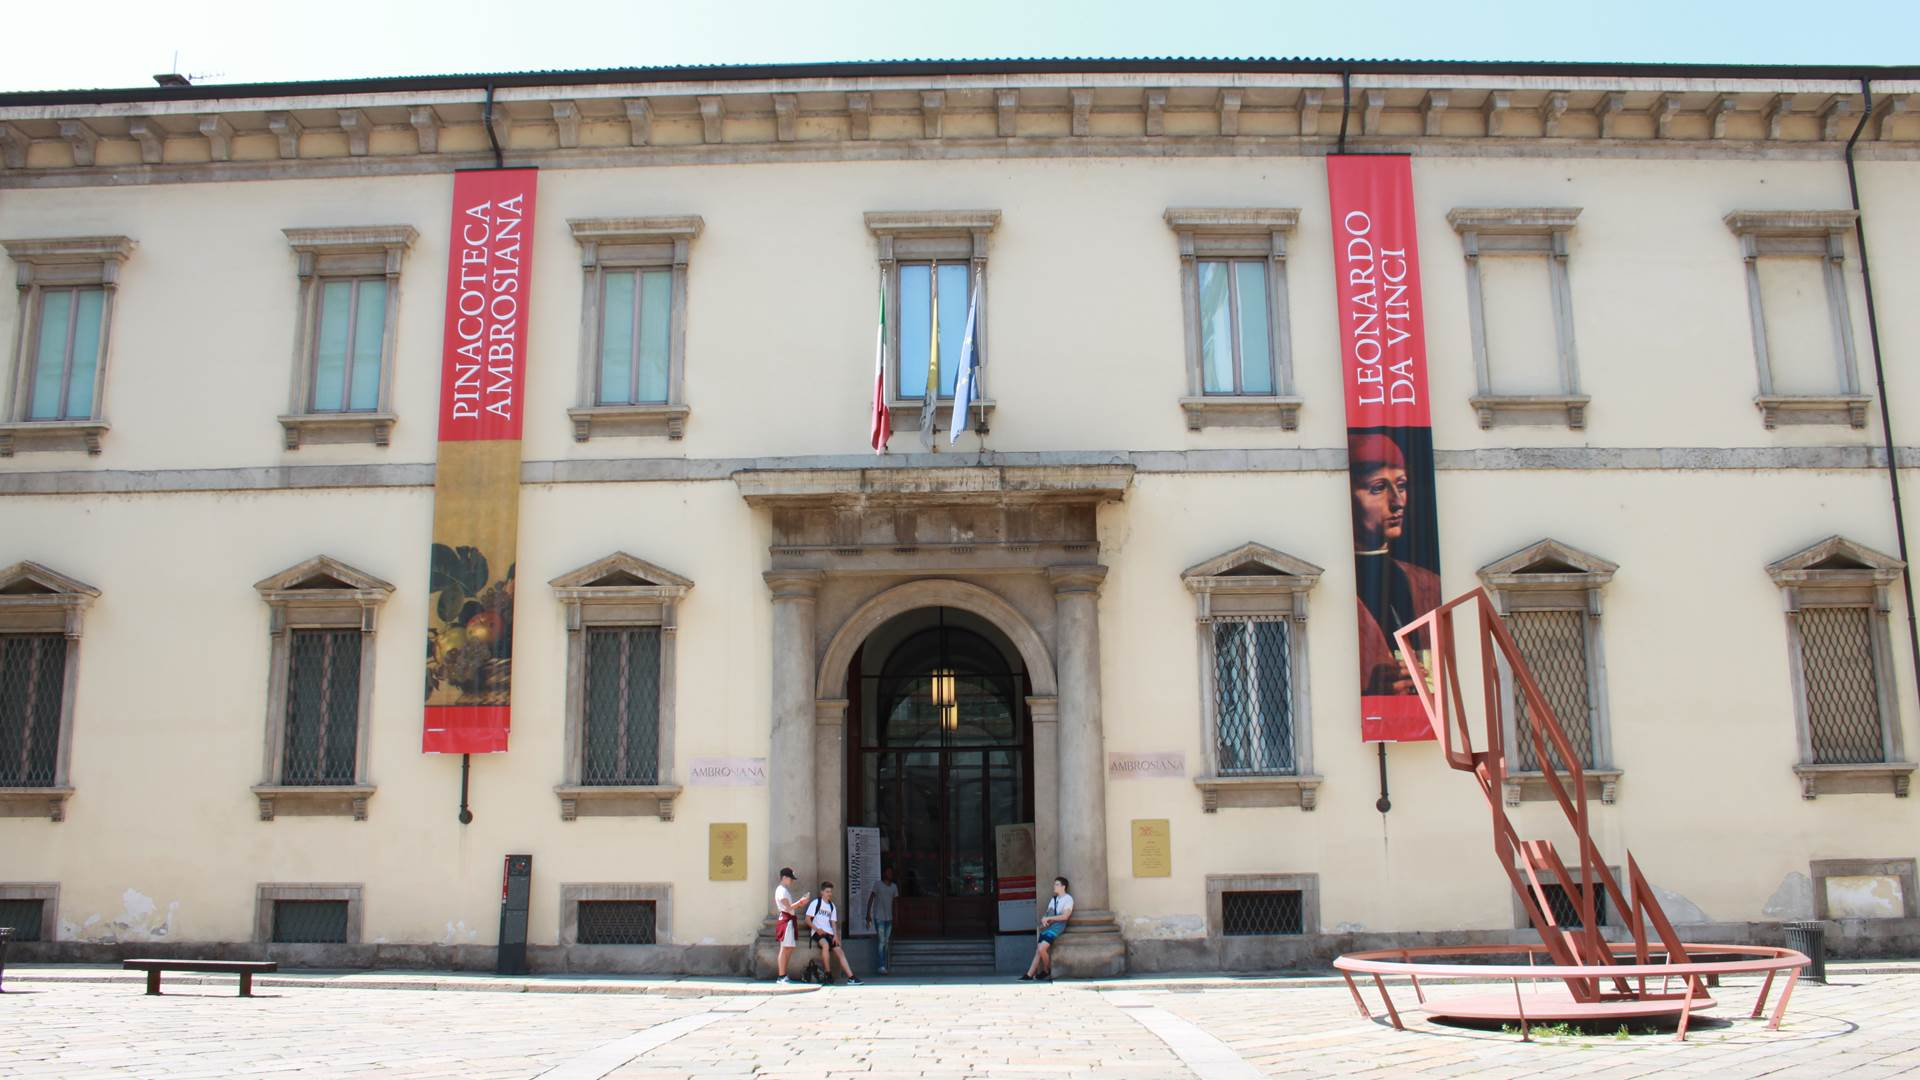 BIBLIOTECA AND PINACOTECA: REOPENING DATES